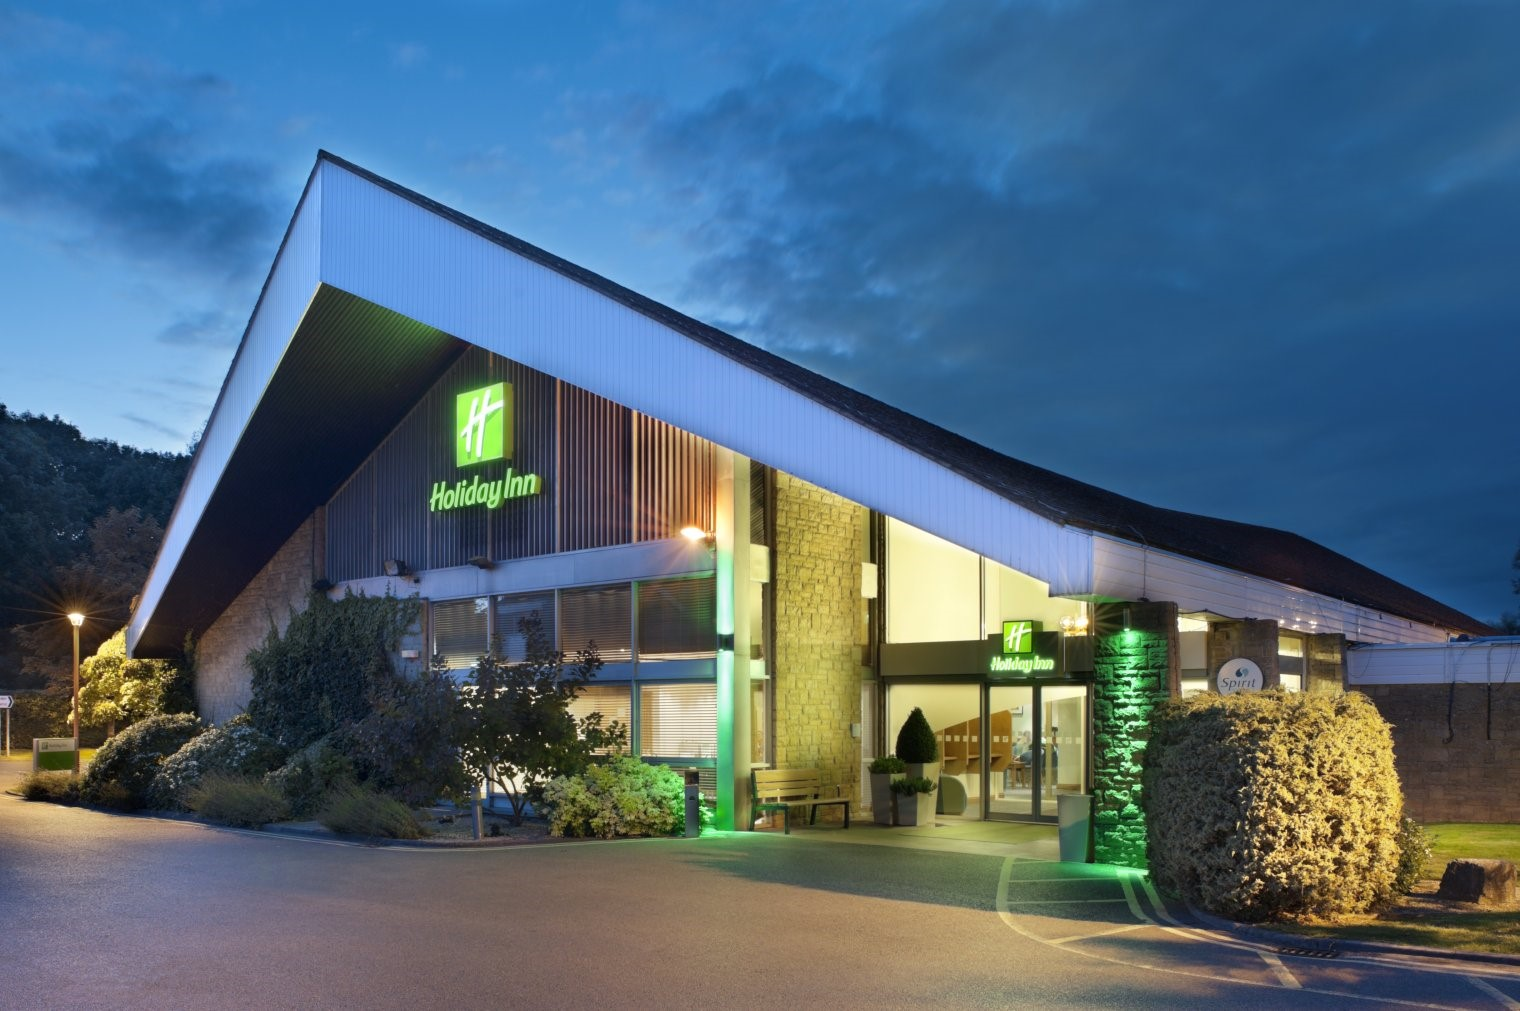 Picture of Holiday Inn Swindon